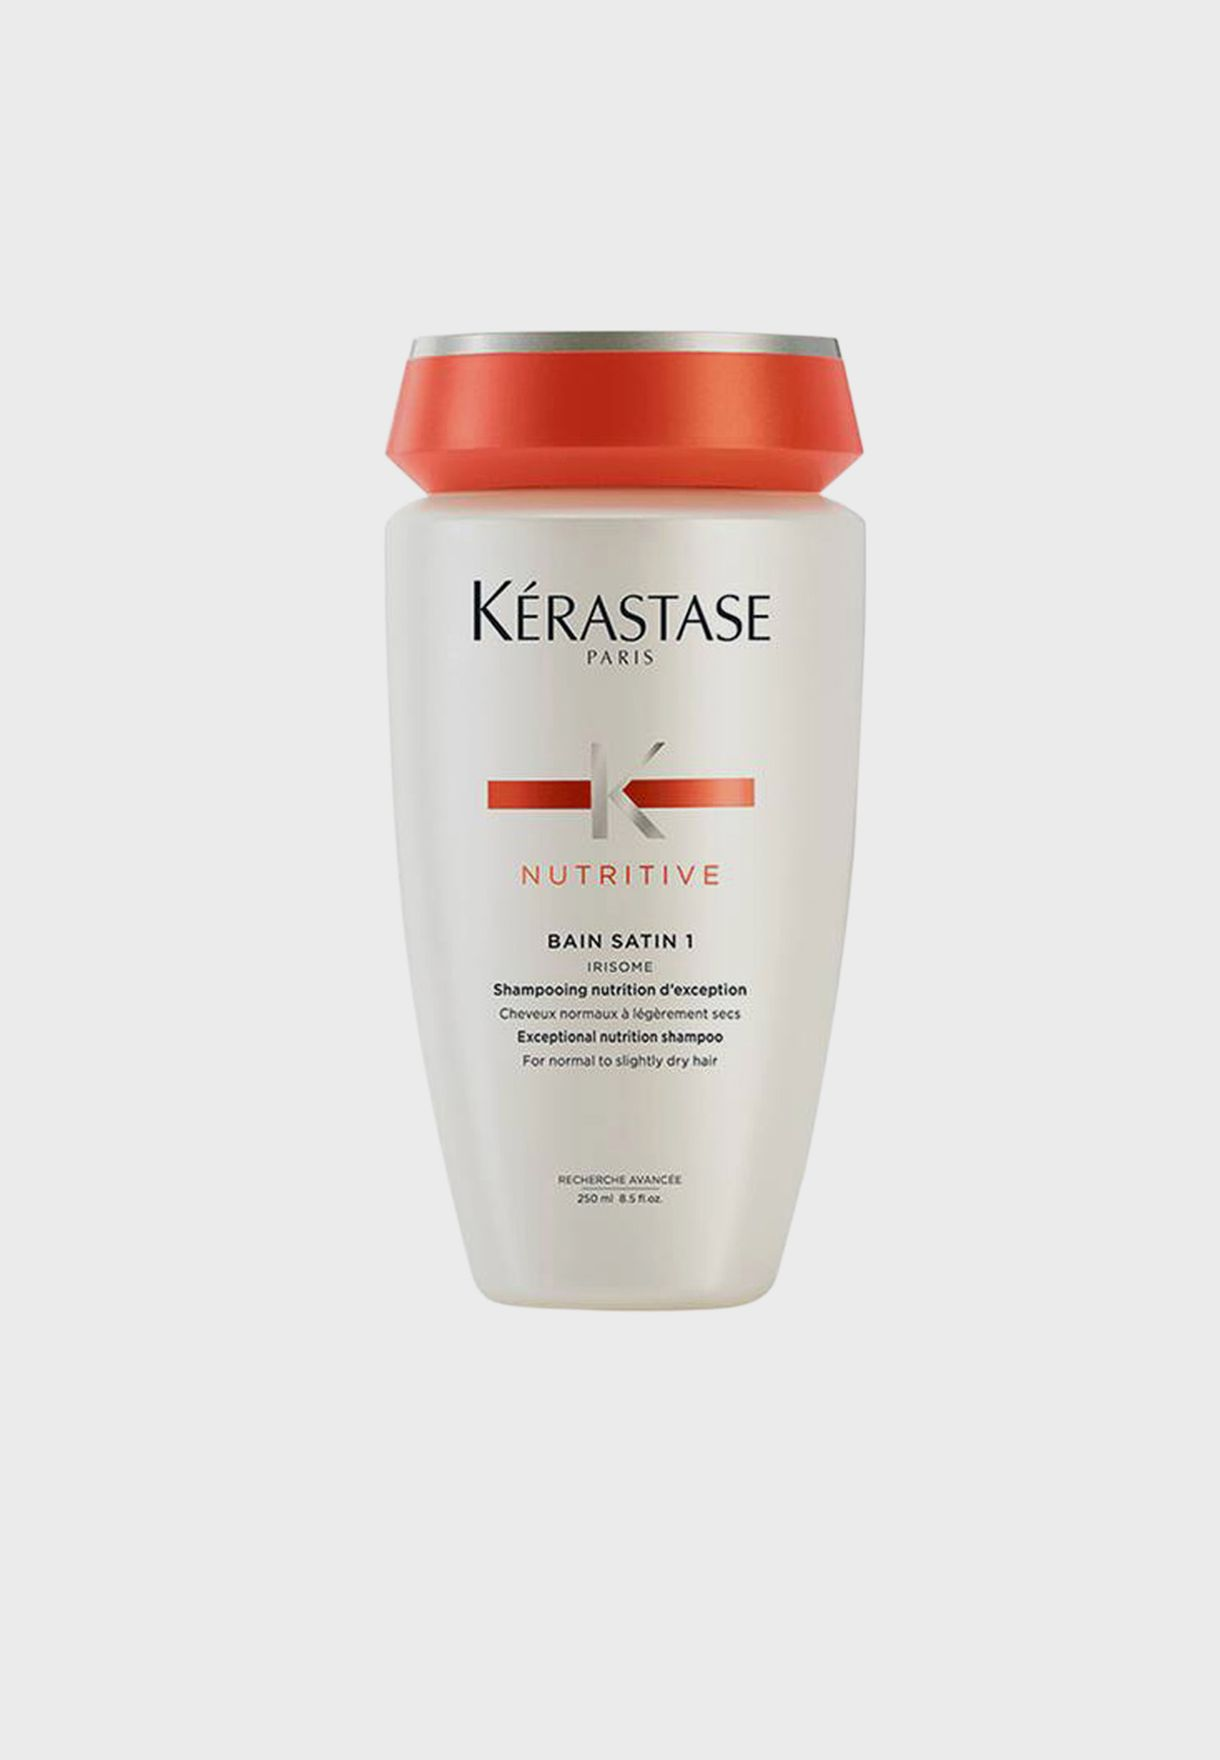 Nutritive Bain Satin 1 Deep Nourish Shampoo 250ml